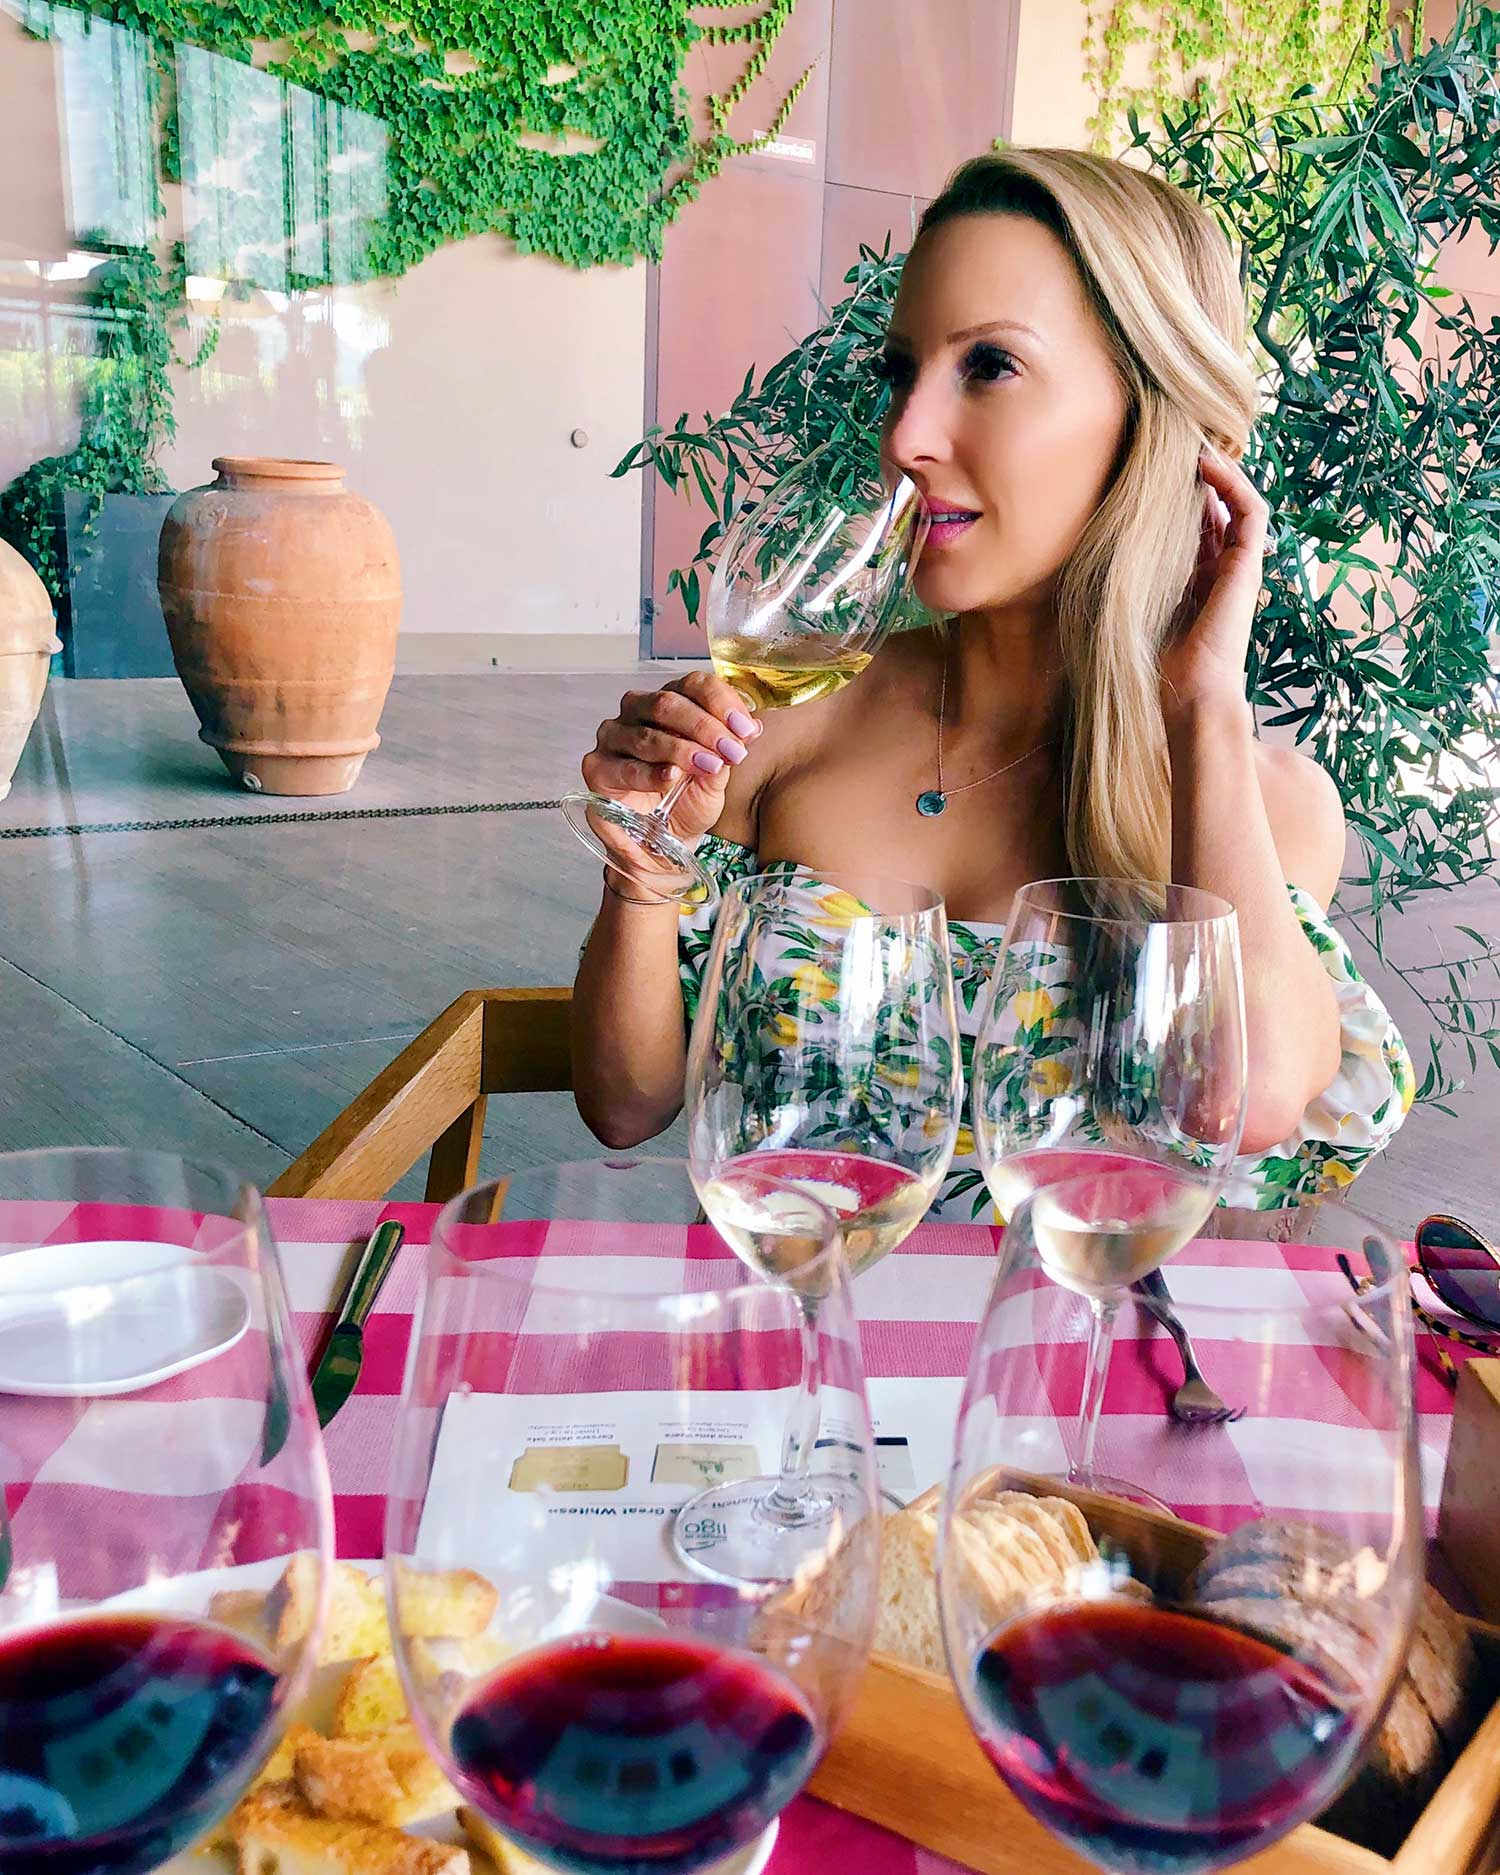 Straight off the plane to lunch at the winery. Putting the  lippy  (it's 'Exposed' from my mini lipstick trio perfect for traveling) and  crease-free eyeshadow  through the test: a 24 hour journey to get here, wine and heat , I've got you girls ;)